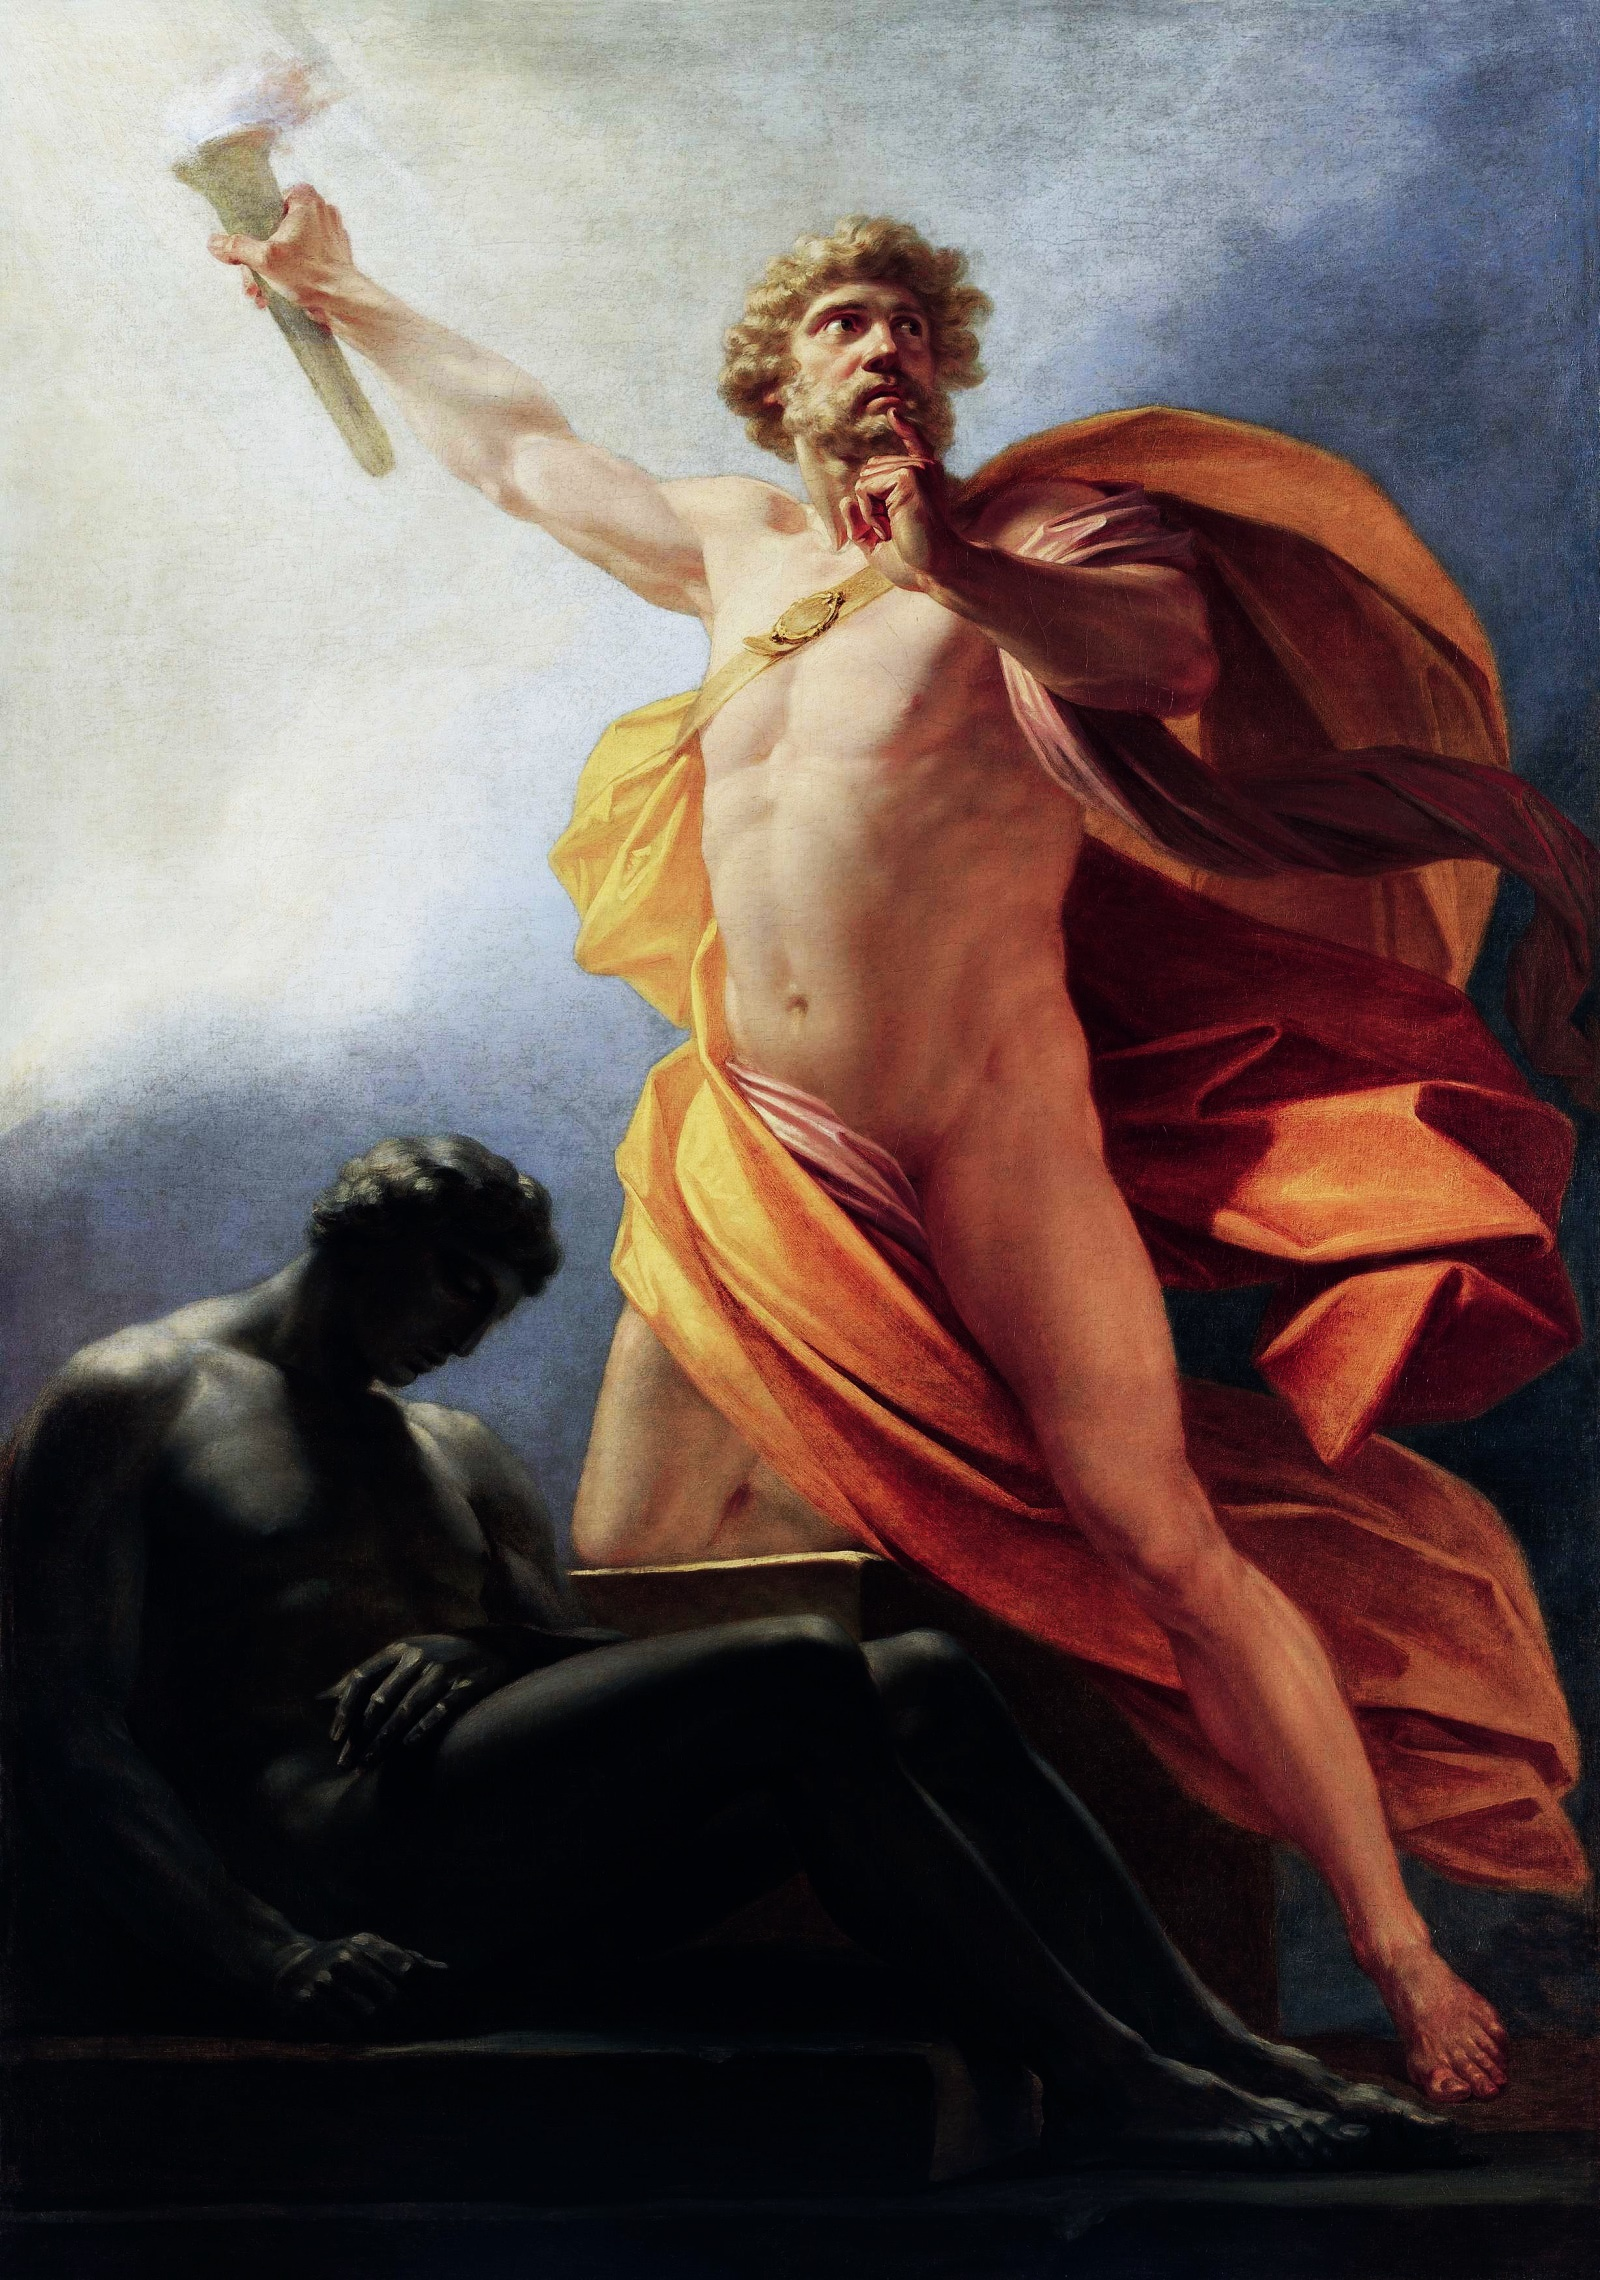 Image:Heinrich fueger 1817 prometheus brings fire to mankind.jpg